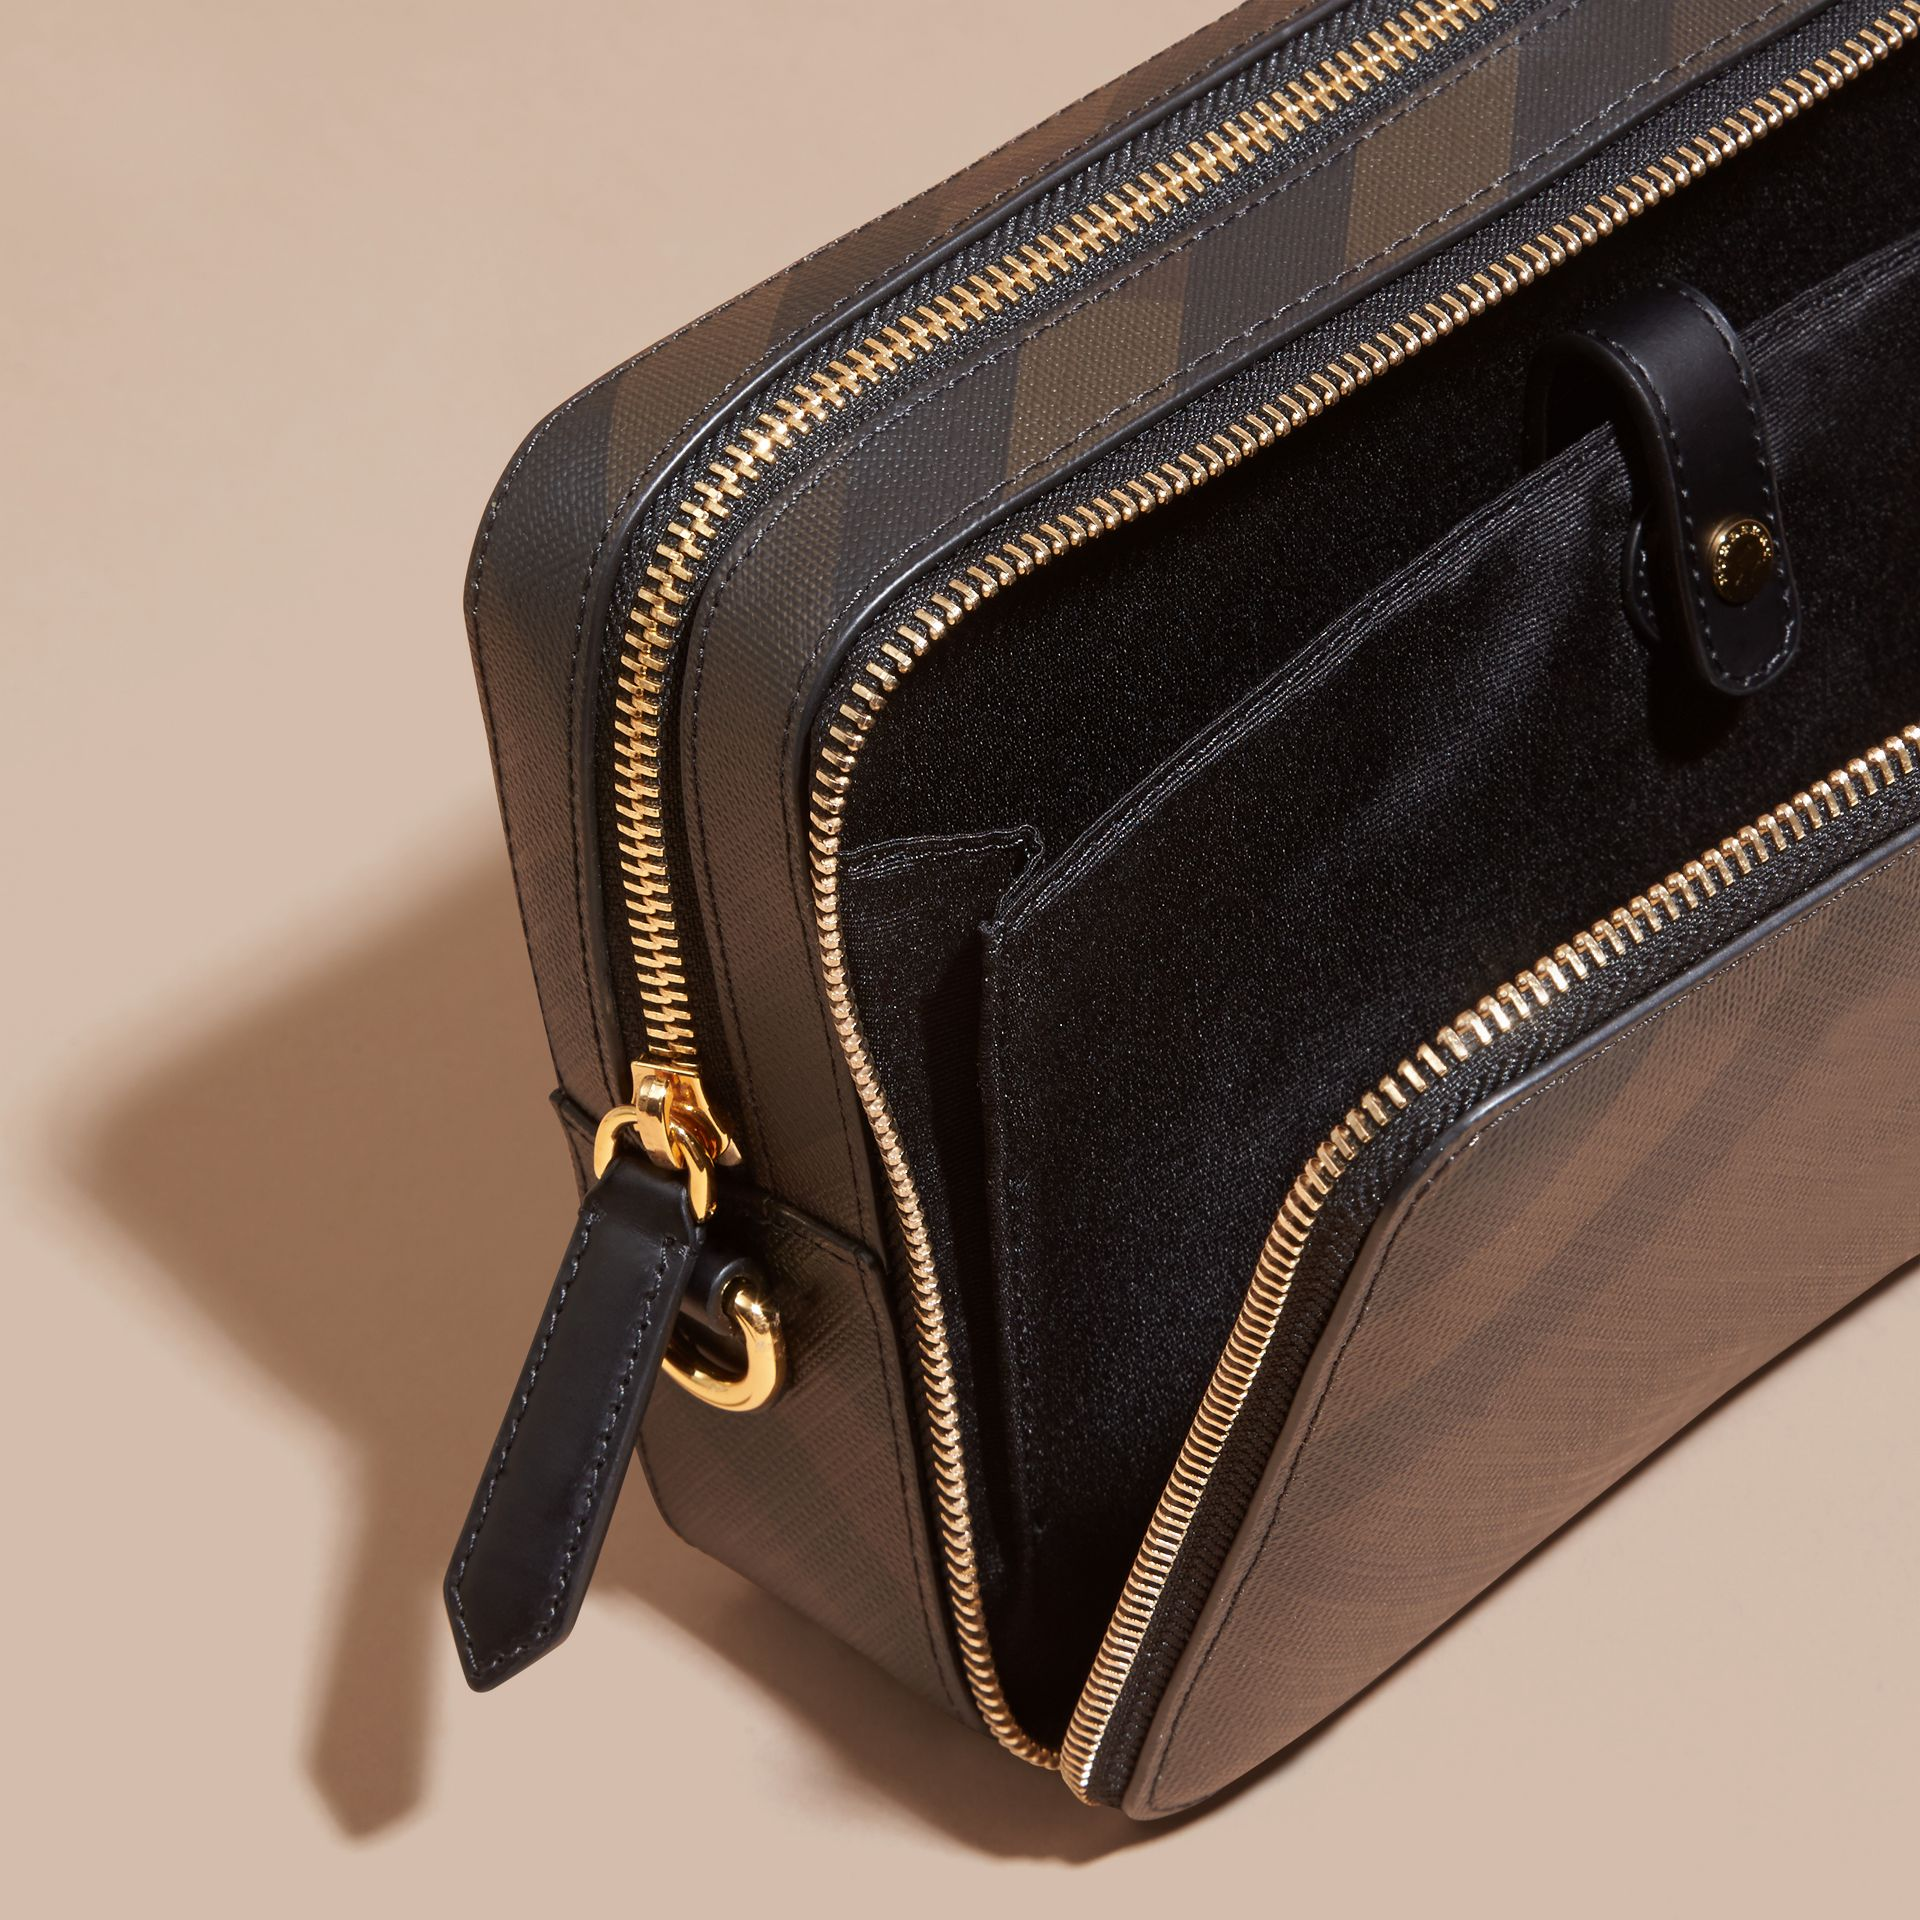 Leather-trimmed London Check Pouch in Chocolate/black - Men | Burberry United States - gallery image 4